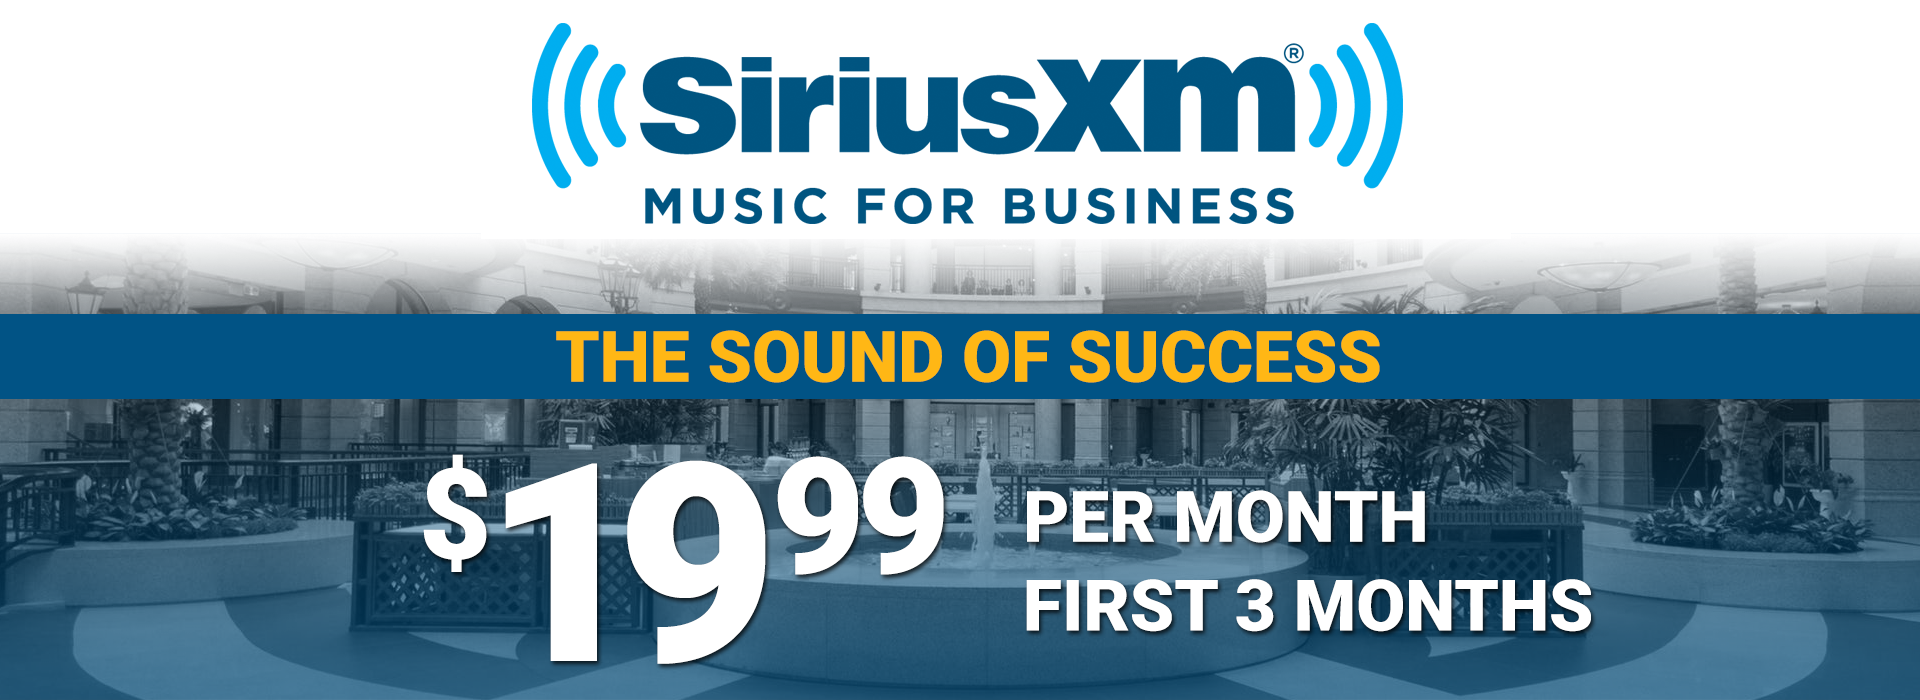 SiriusXM-Music-for-Business-Low-Monthly-Fee